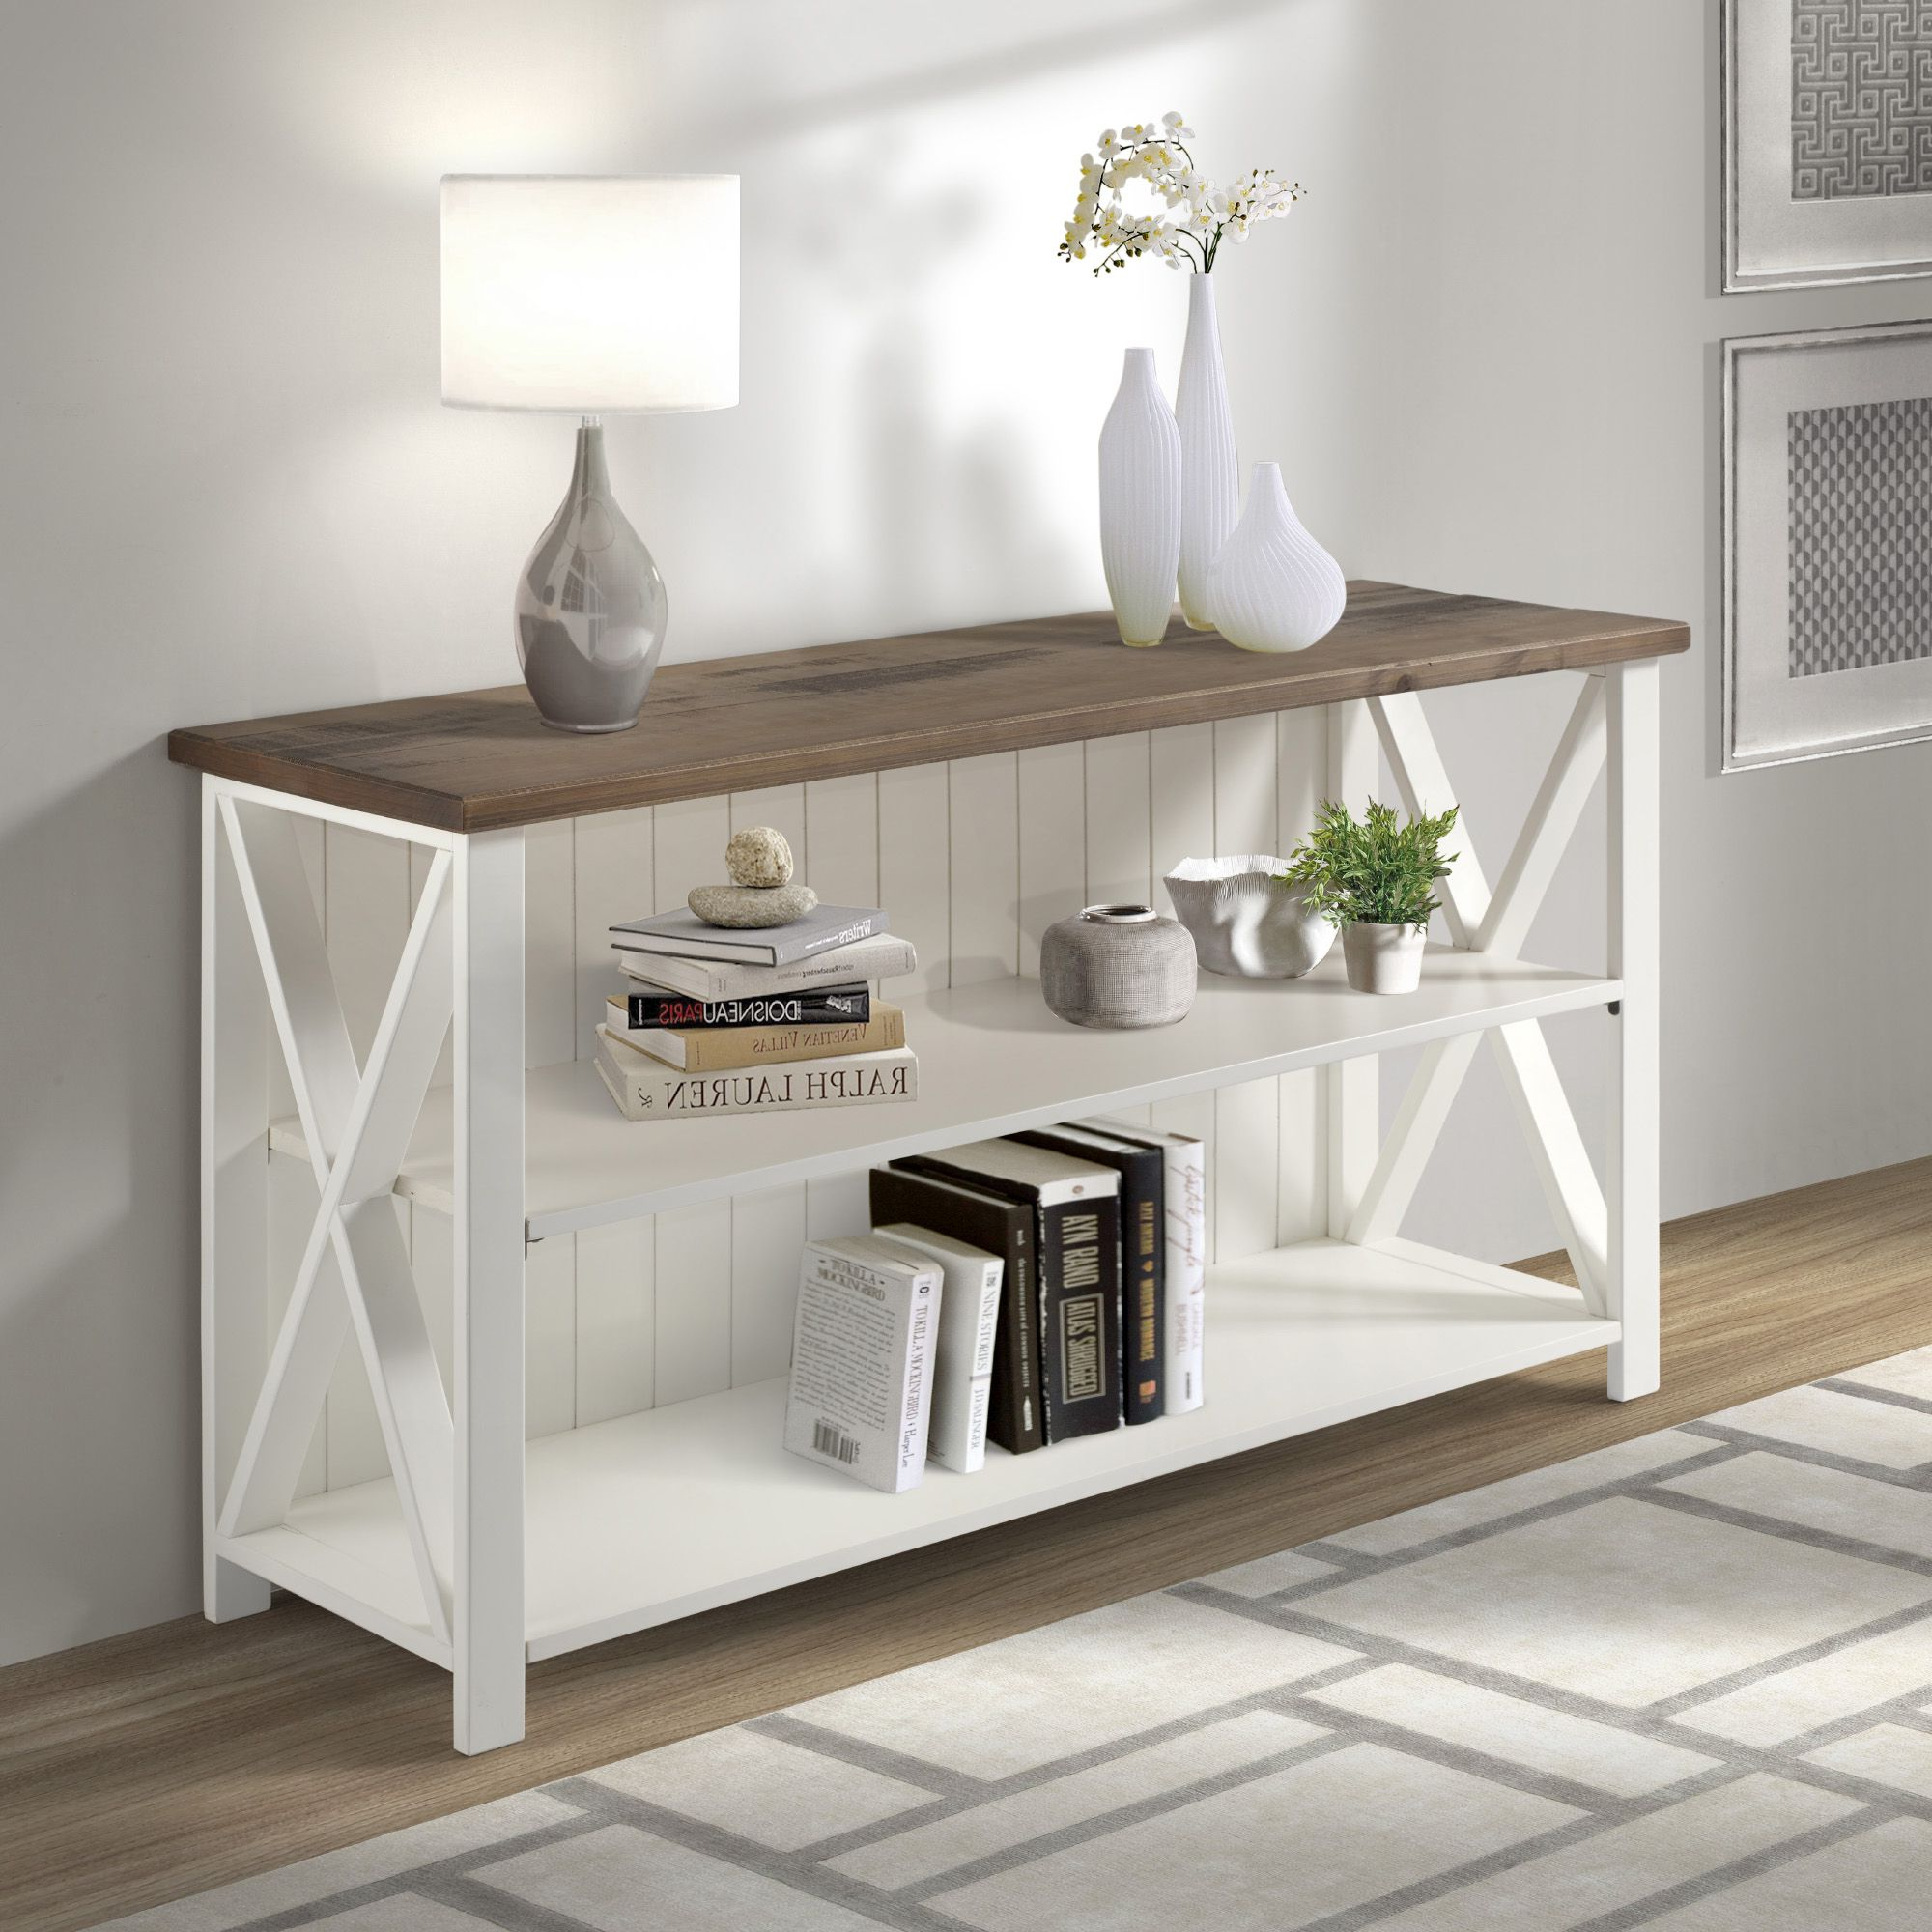 Woven Paths Solid Wood Storage Console Table, White Regarding Woven Paths Franklin Grooved Two Door Tv Stands (View 7 of 20)